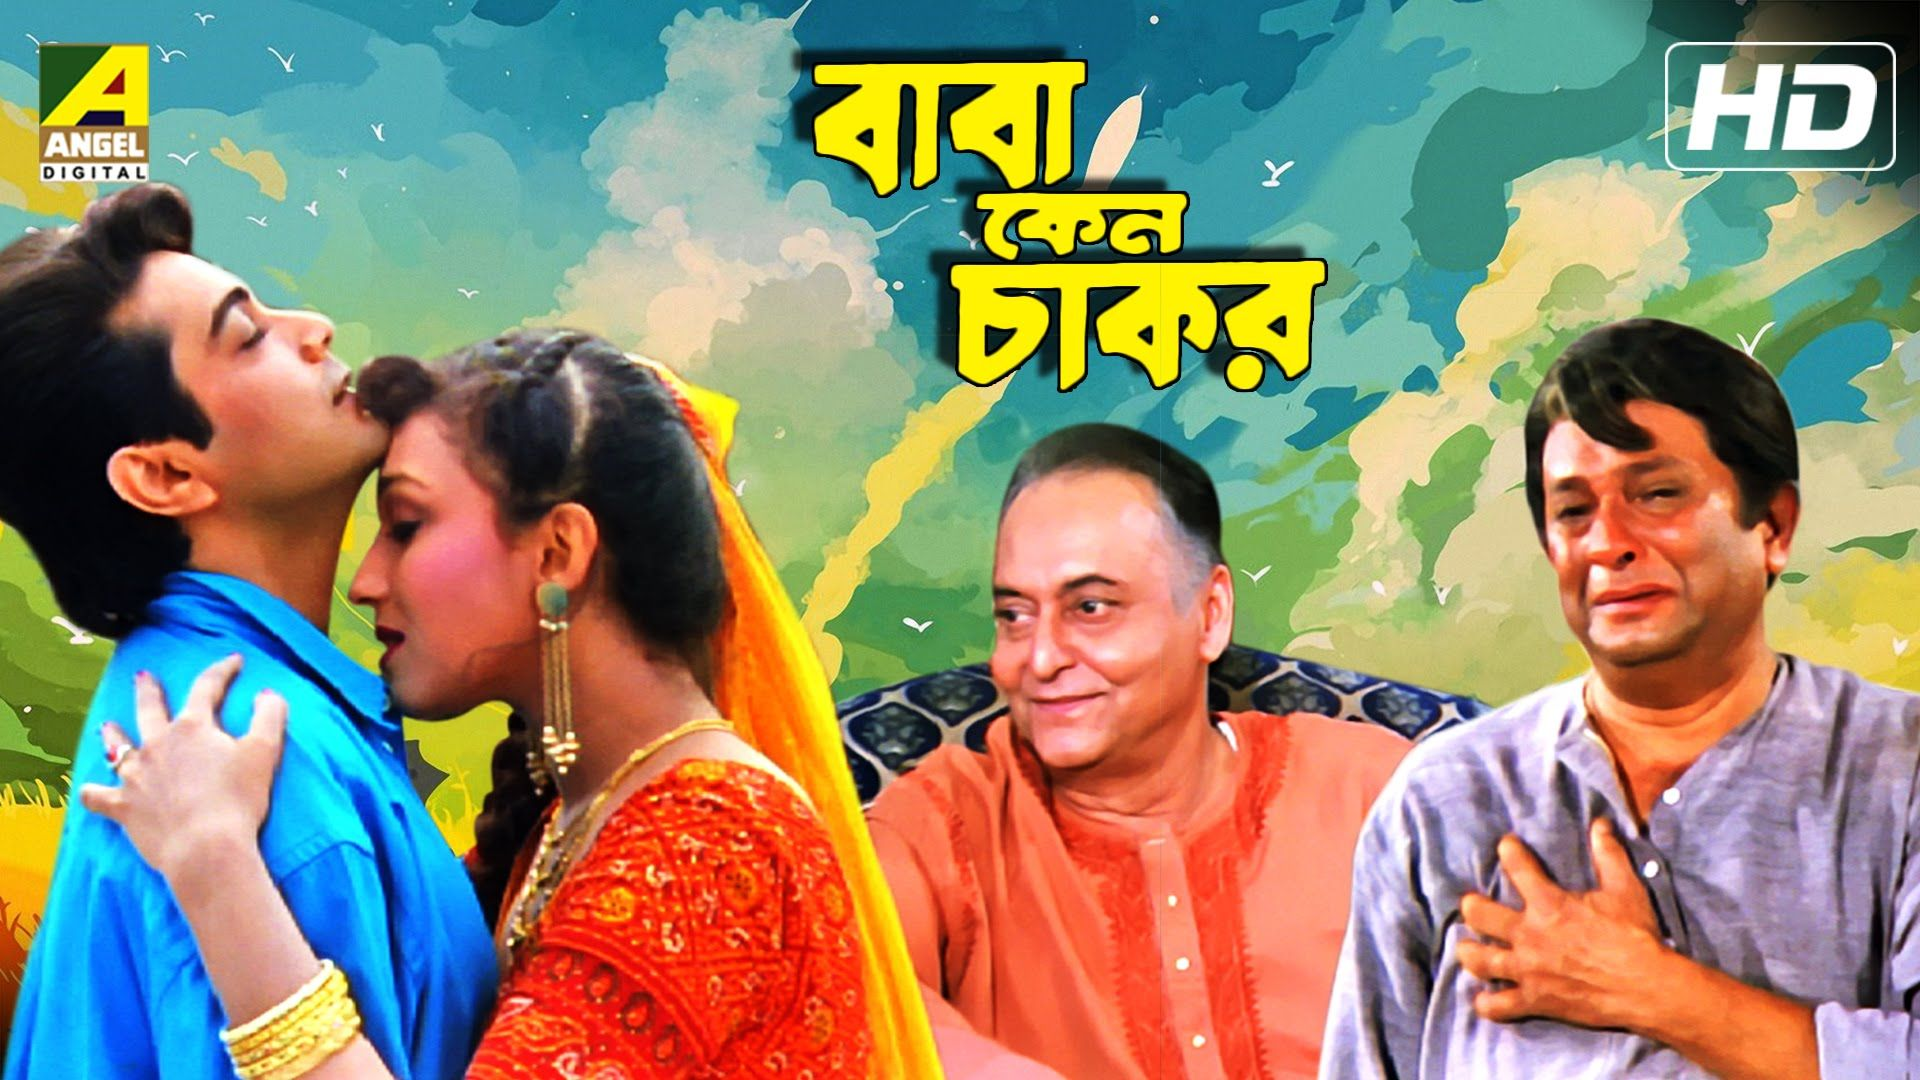 movie baba keno chakar language bengali genre drama producer